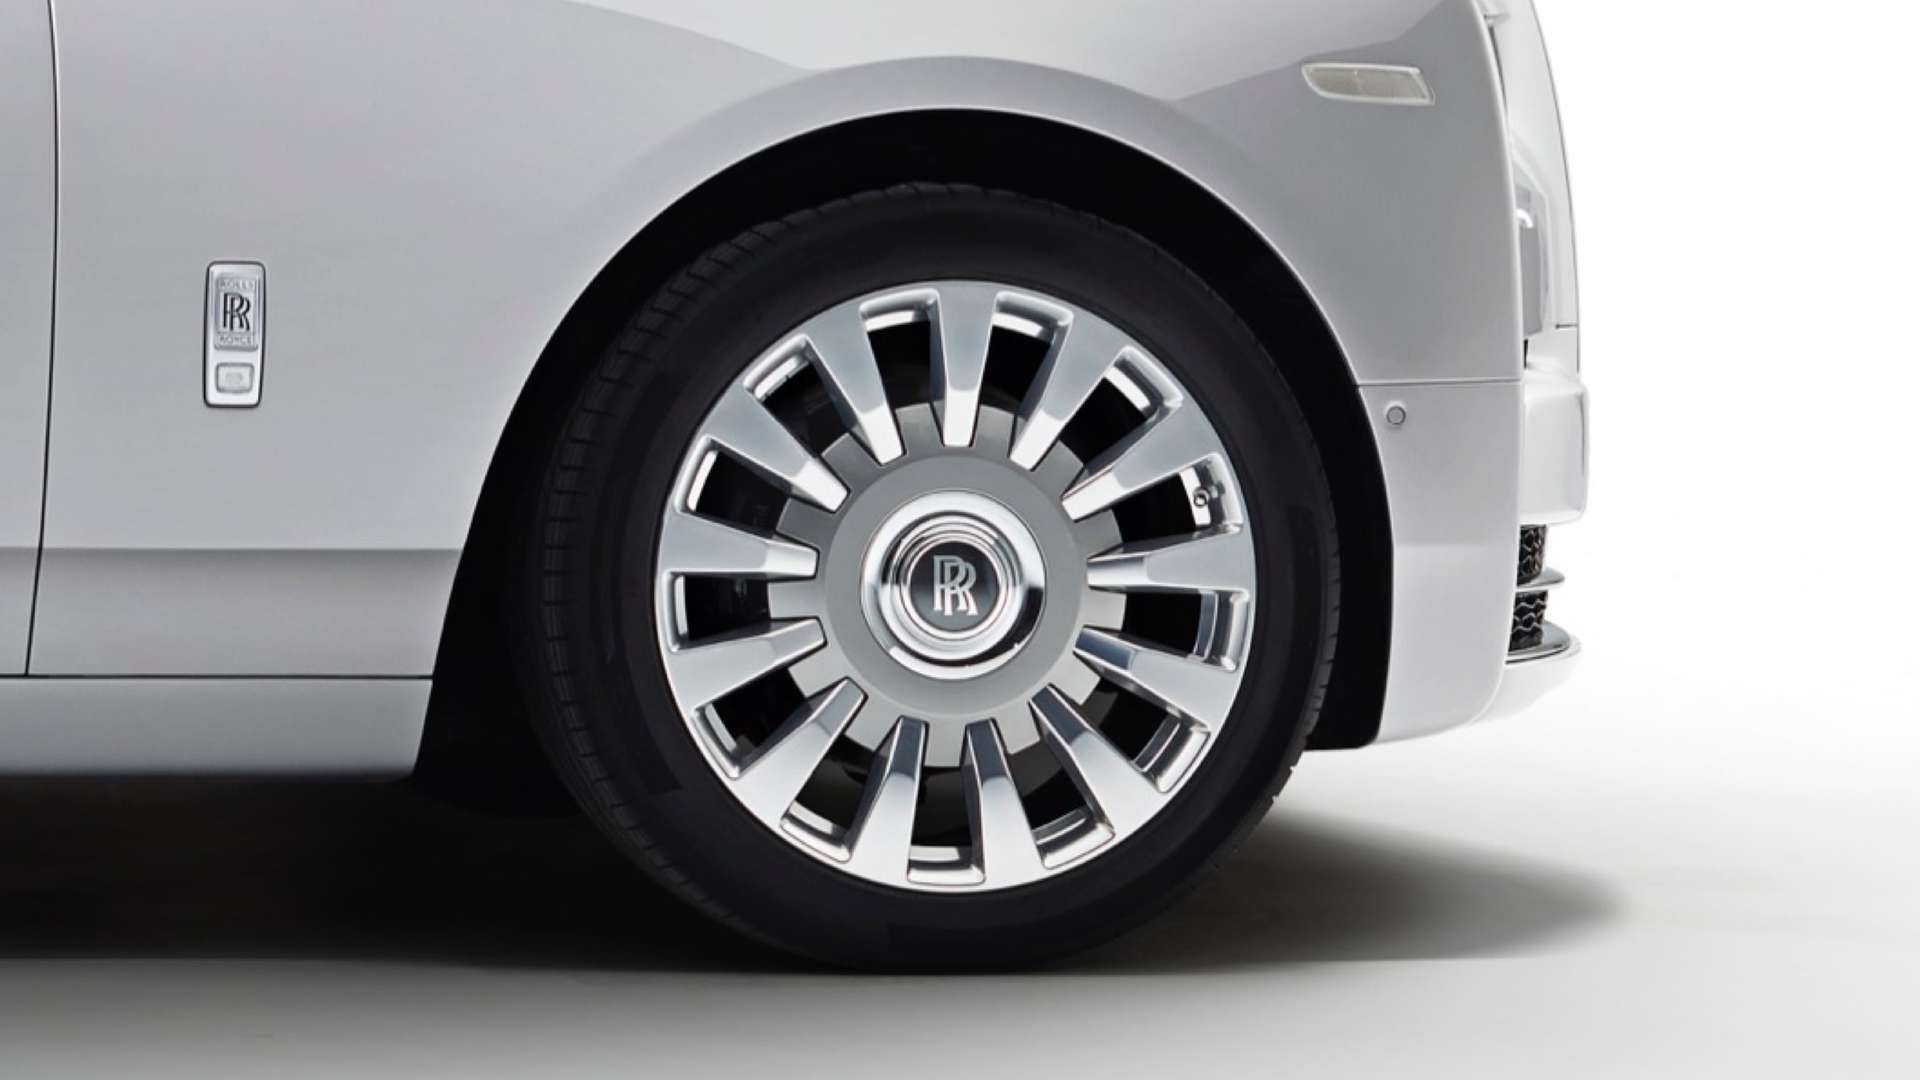 A close up of the wheel of a Rolls-Royce Phantom Motor Car